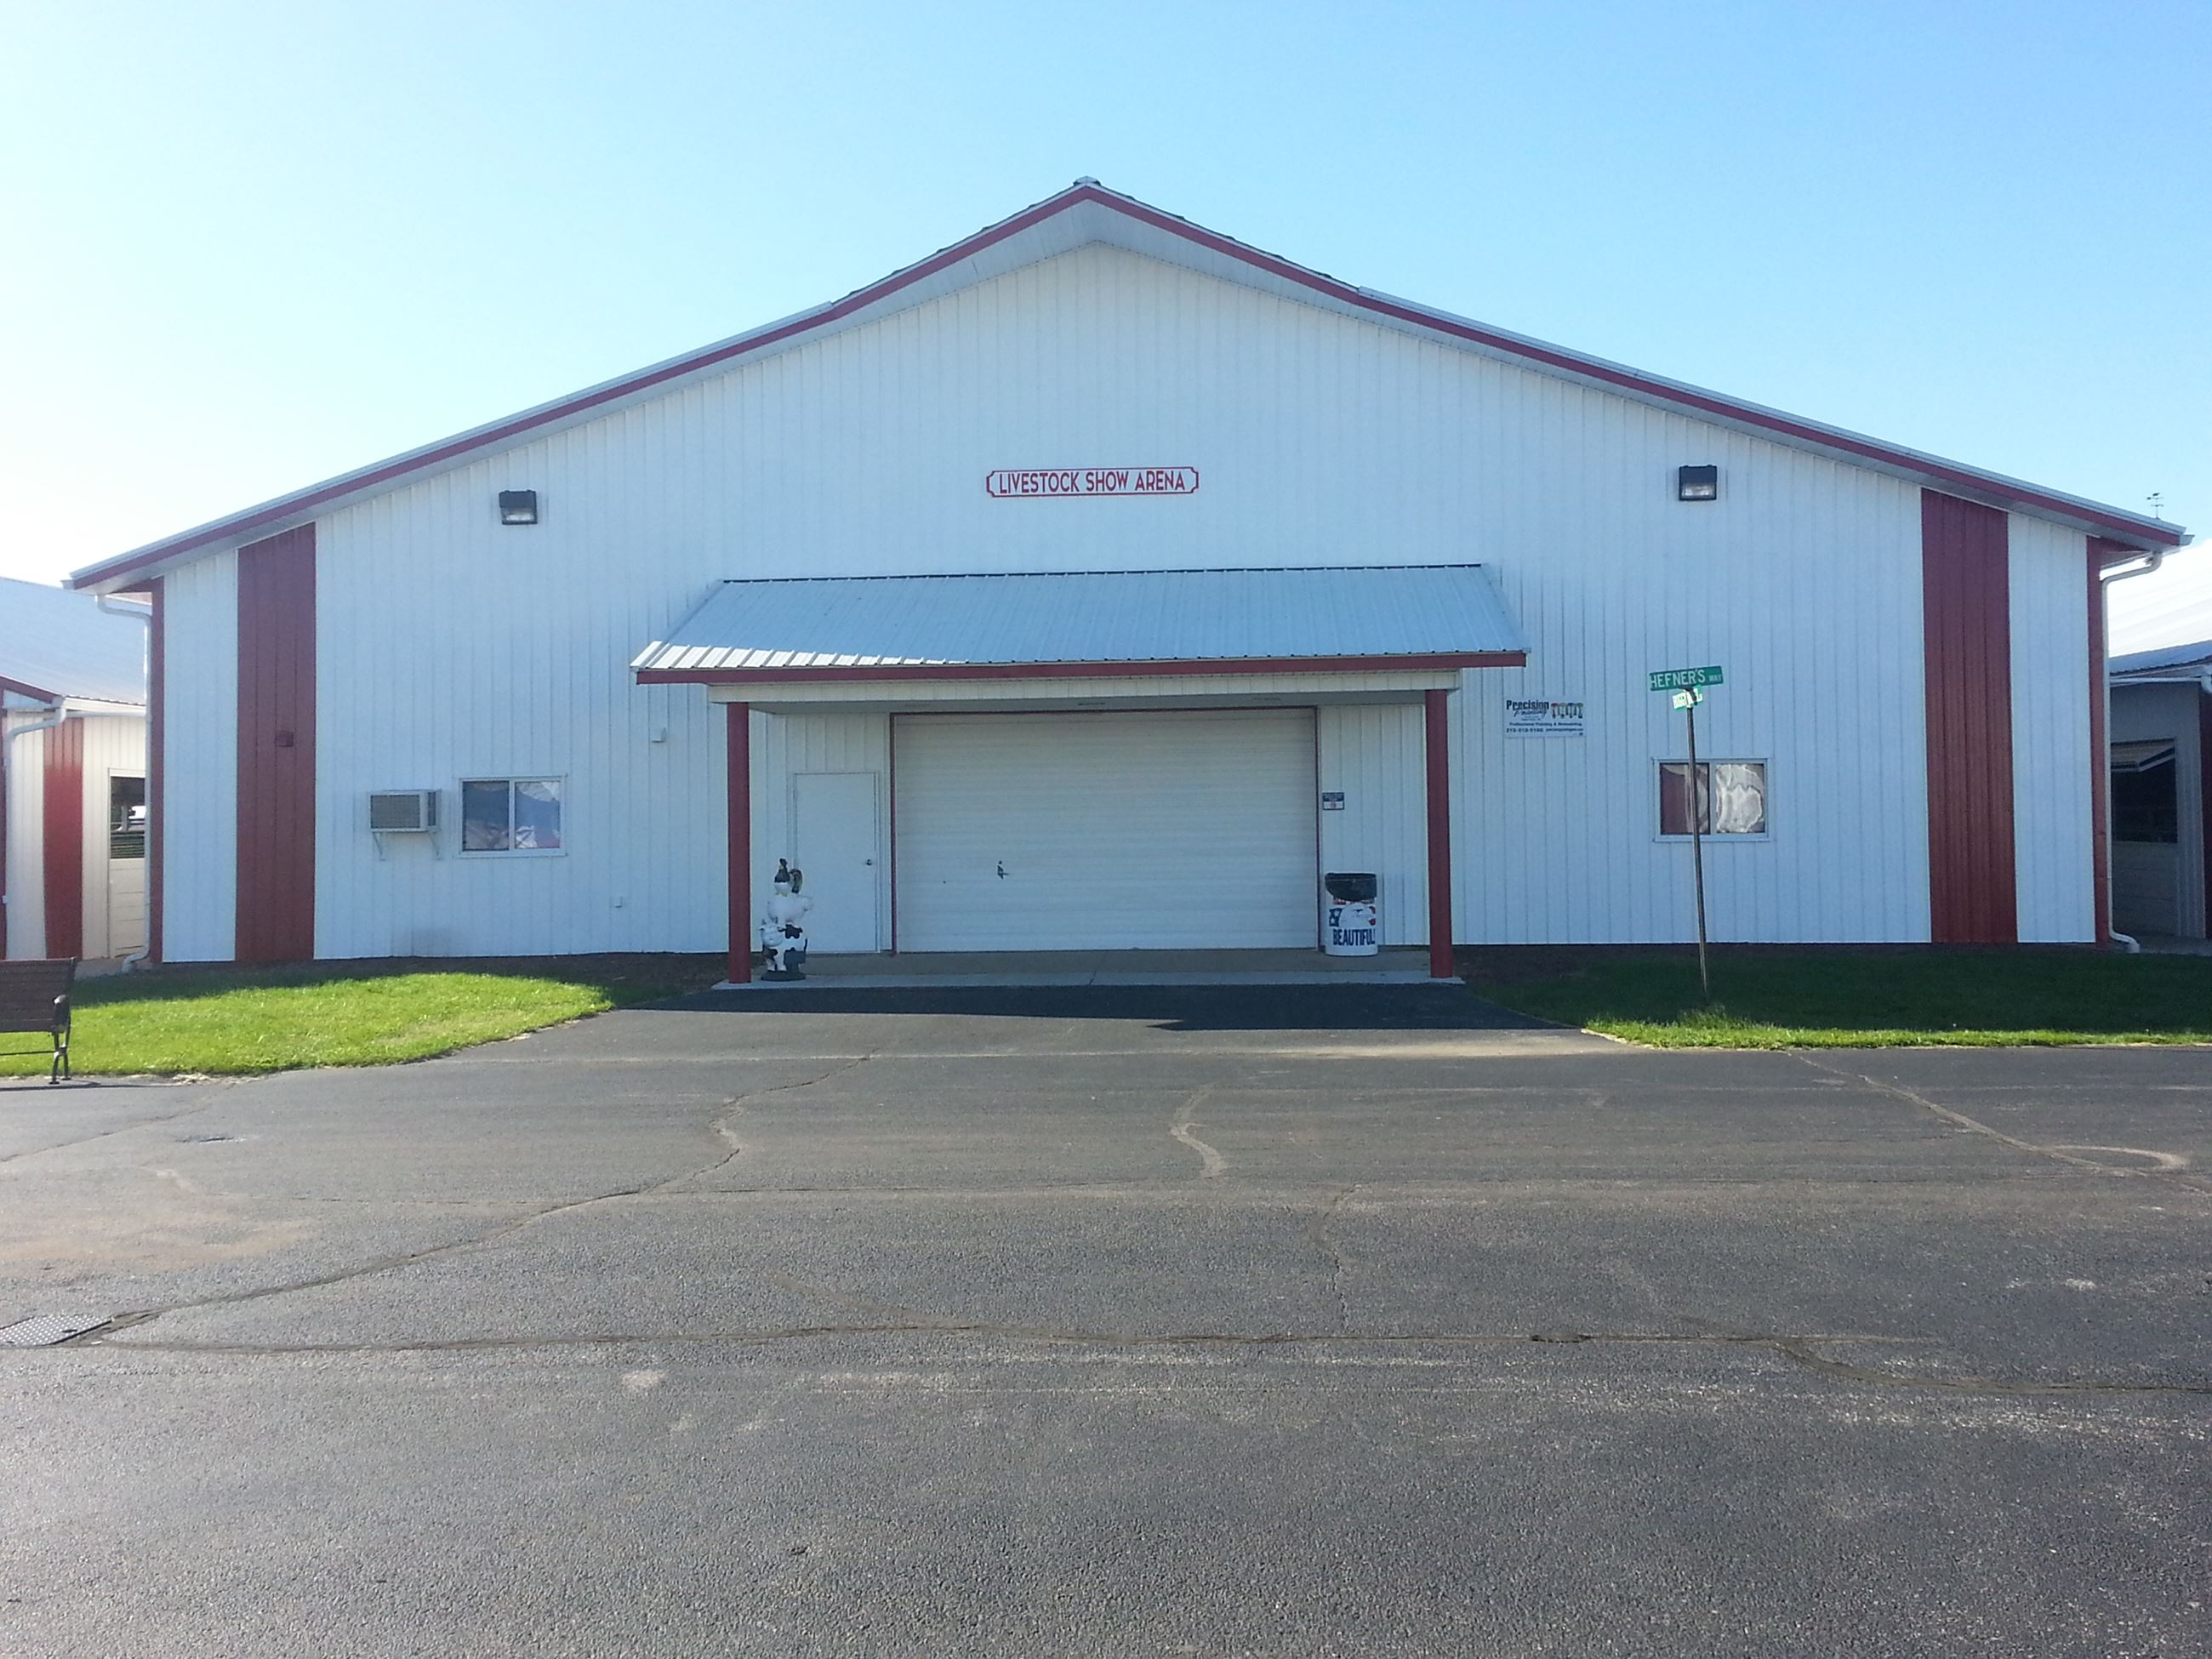 Front of livestock show arena building at Porter County Expo Center